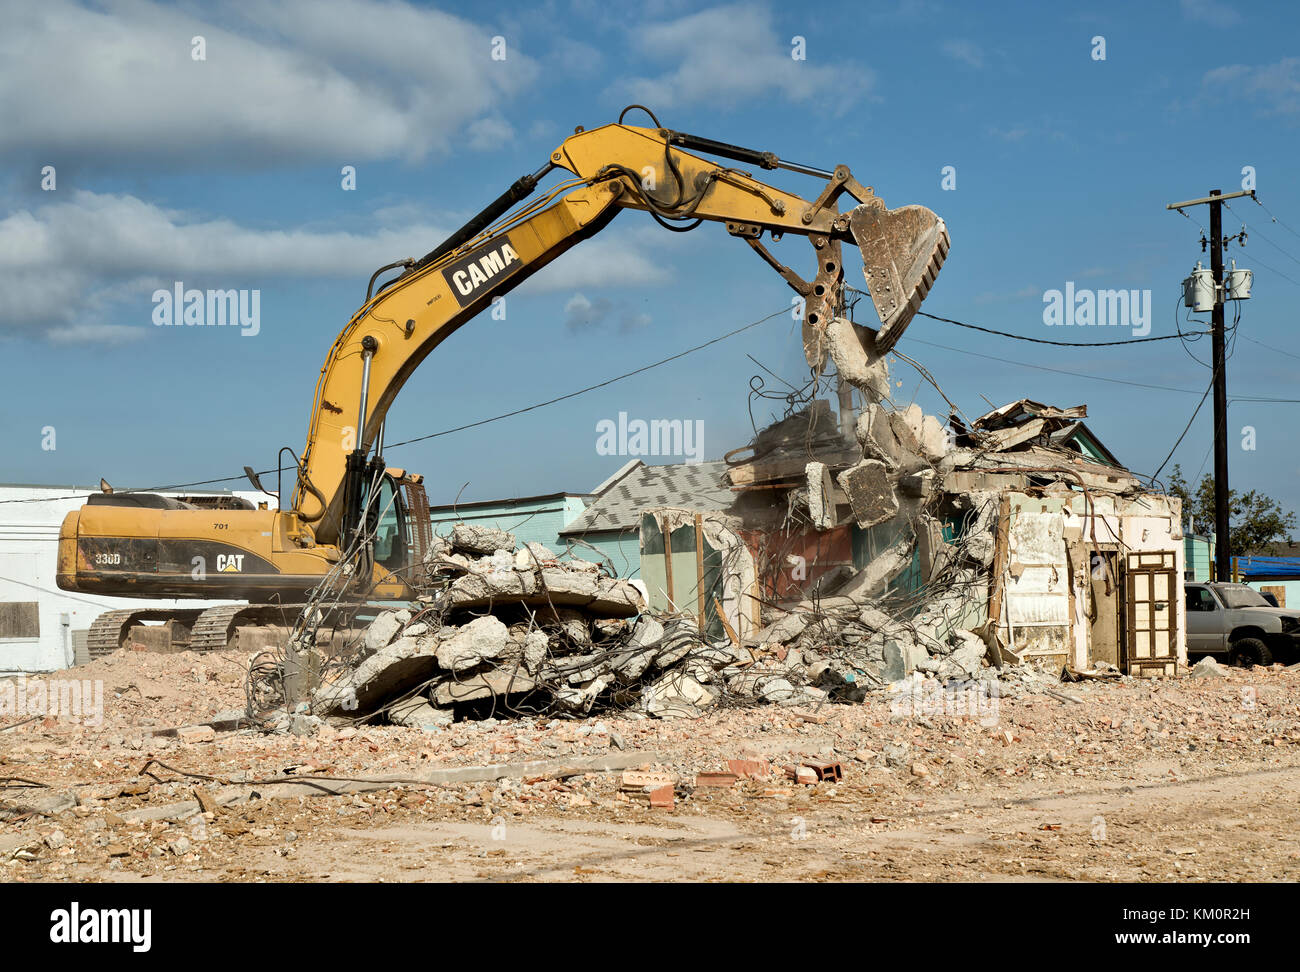 Caterpillar 330dl Hydraulic Excavator, swing boom,  cleaning up destroyed old structure resulting from hurricane - Stock Image